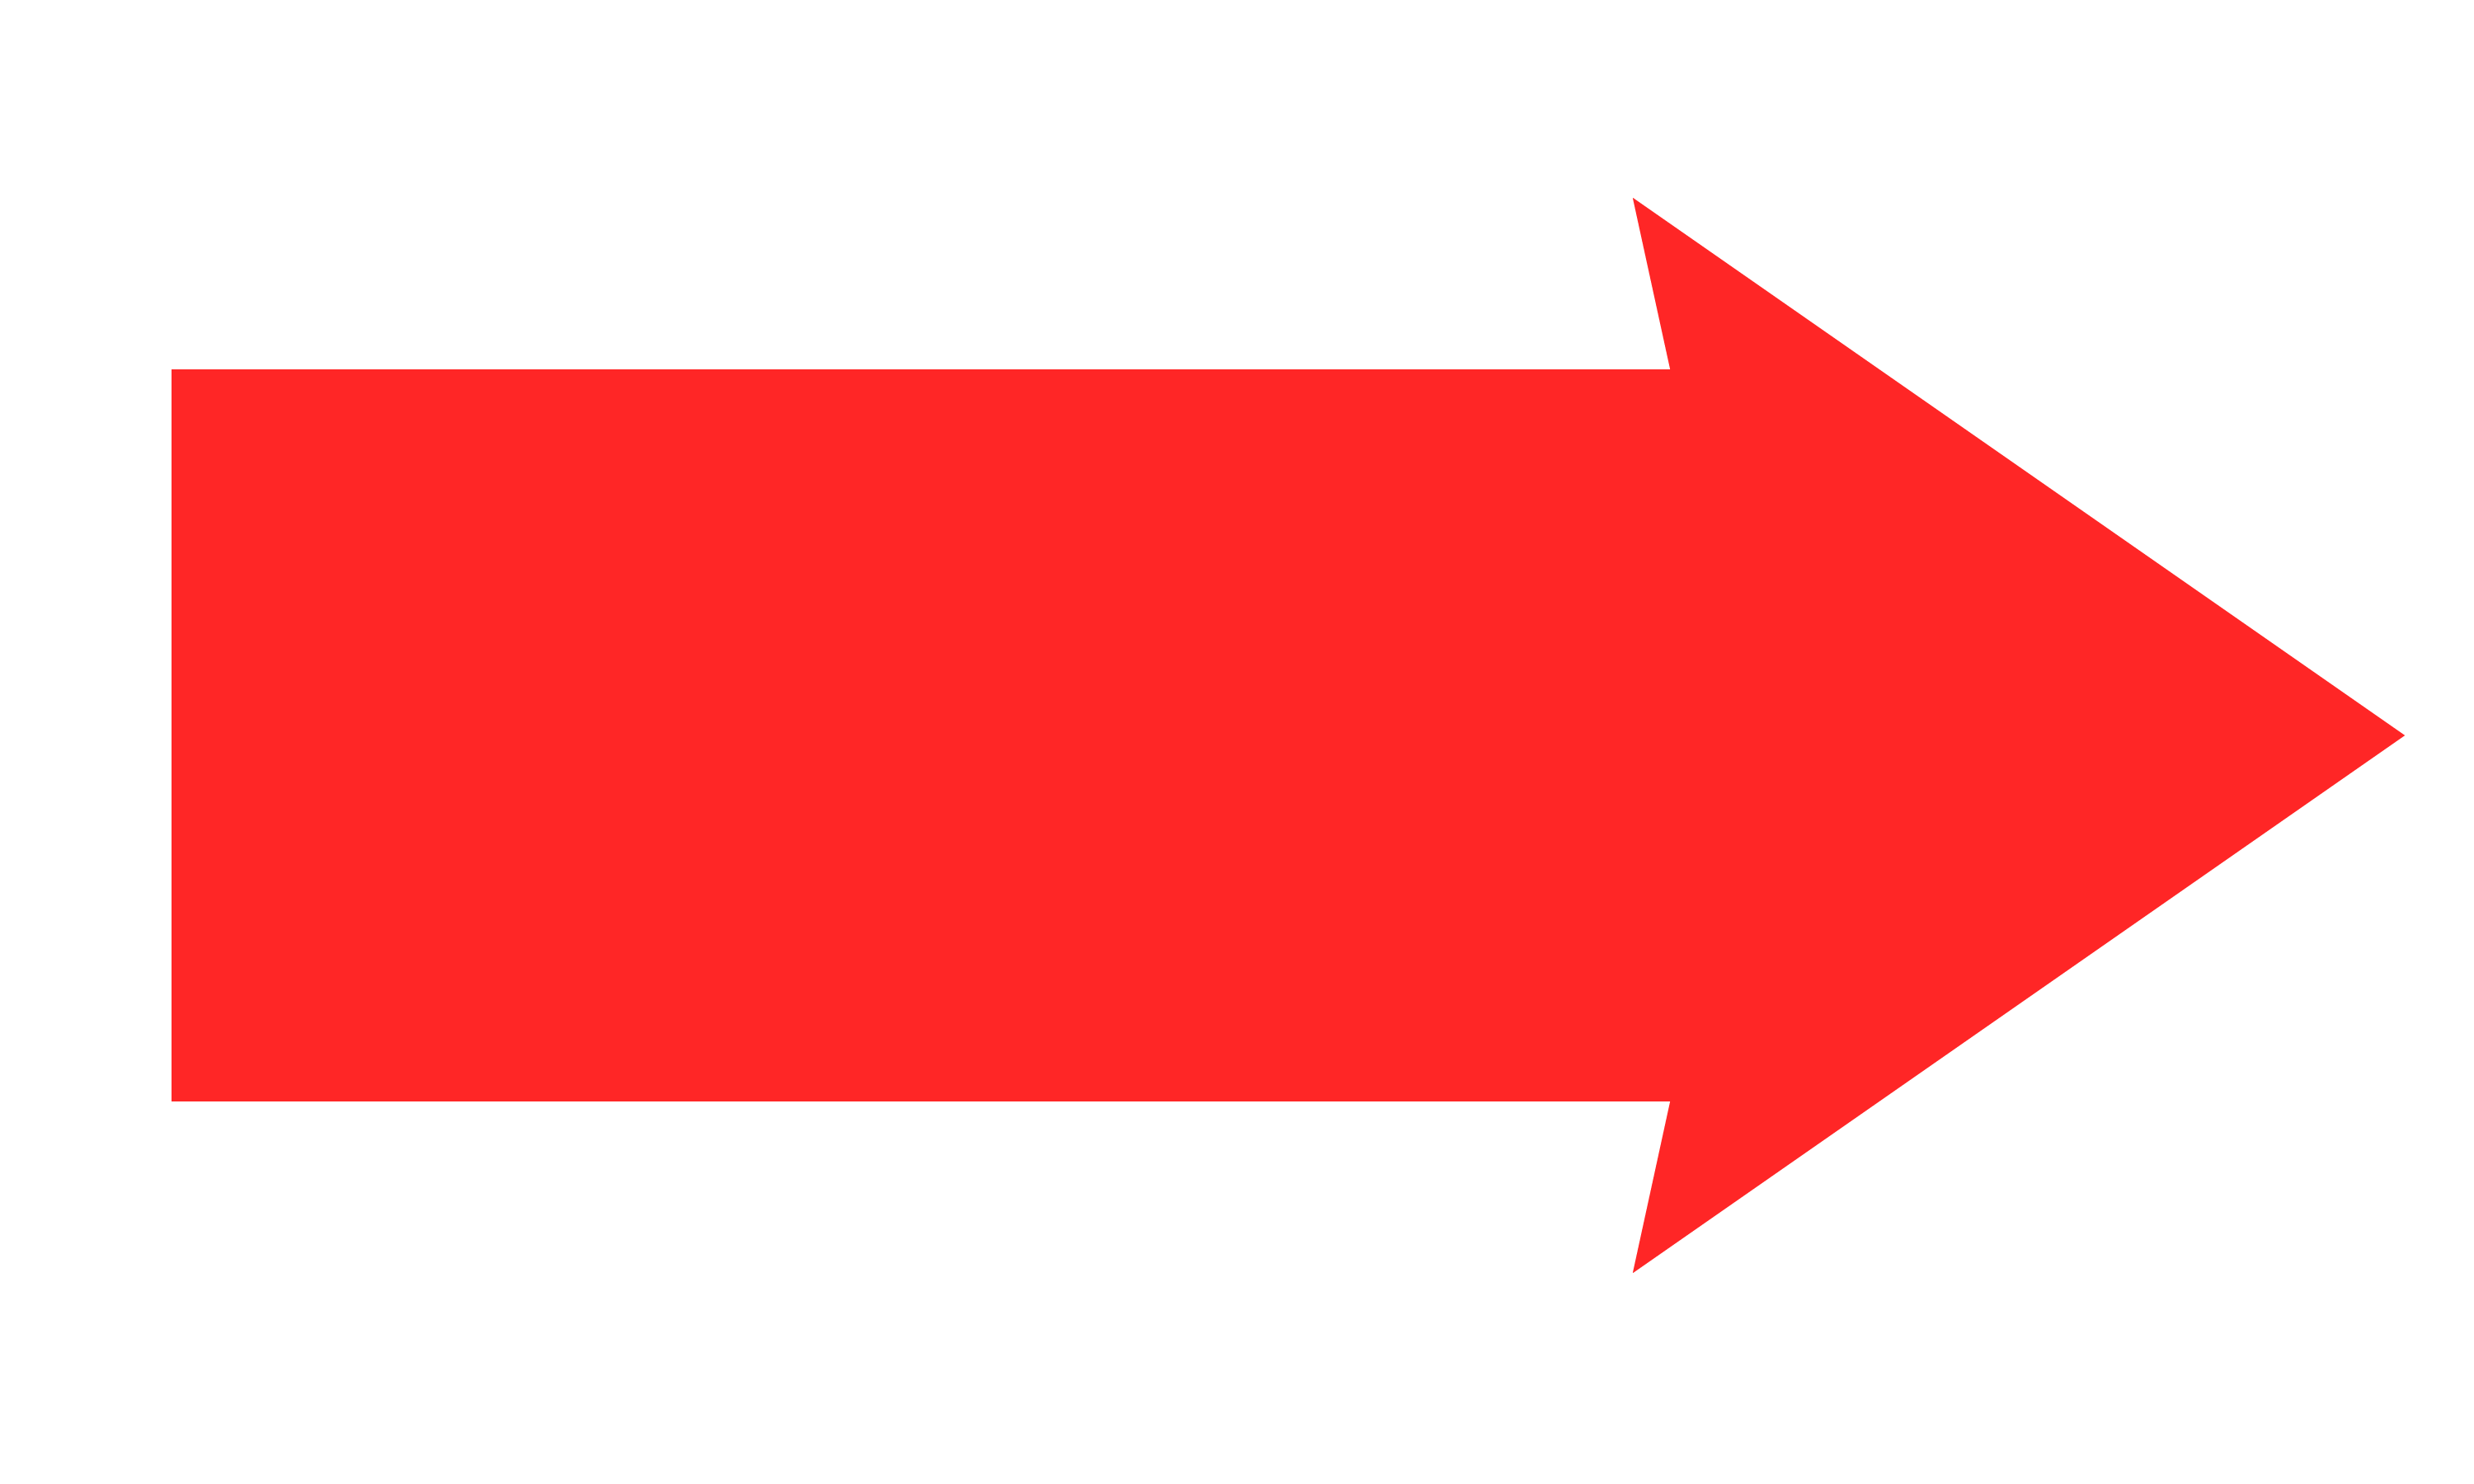 red_arrow_PNG2.png